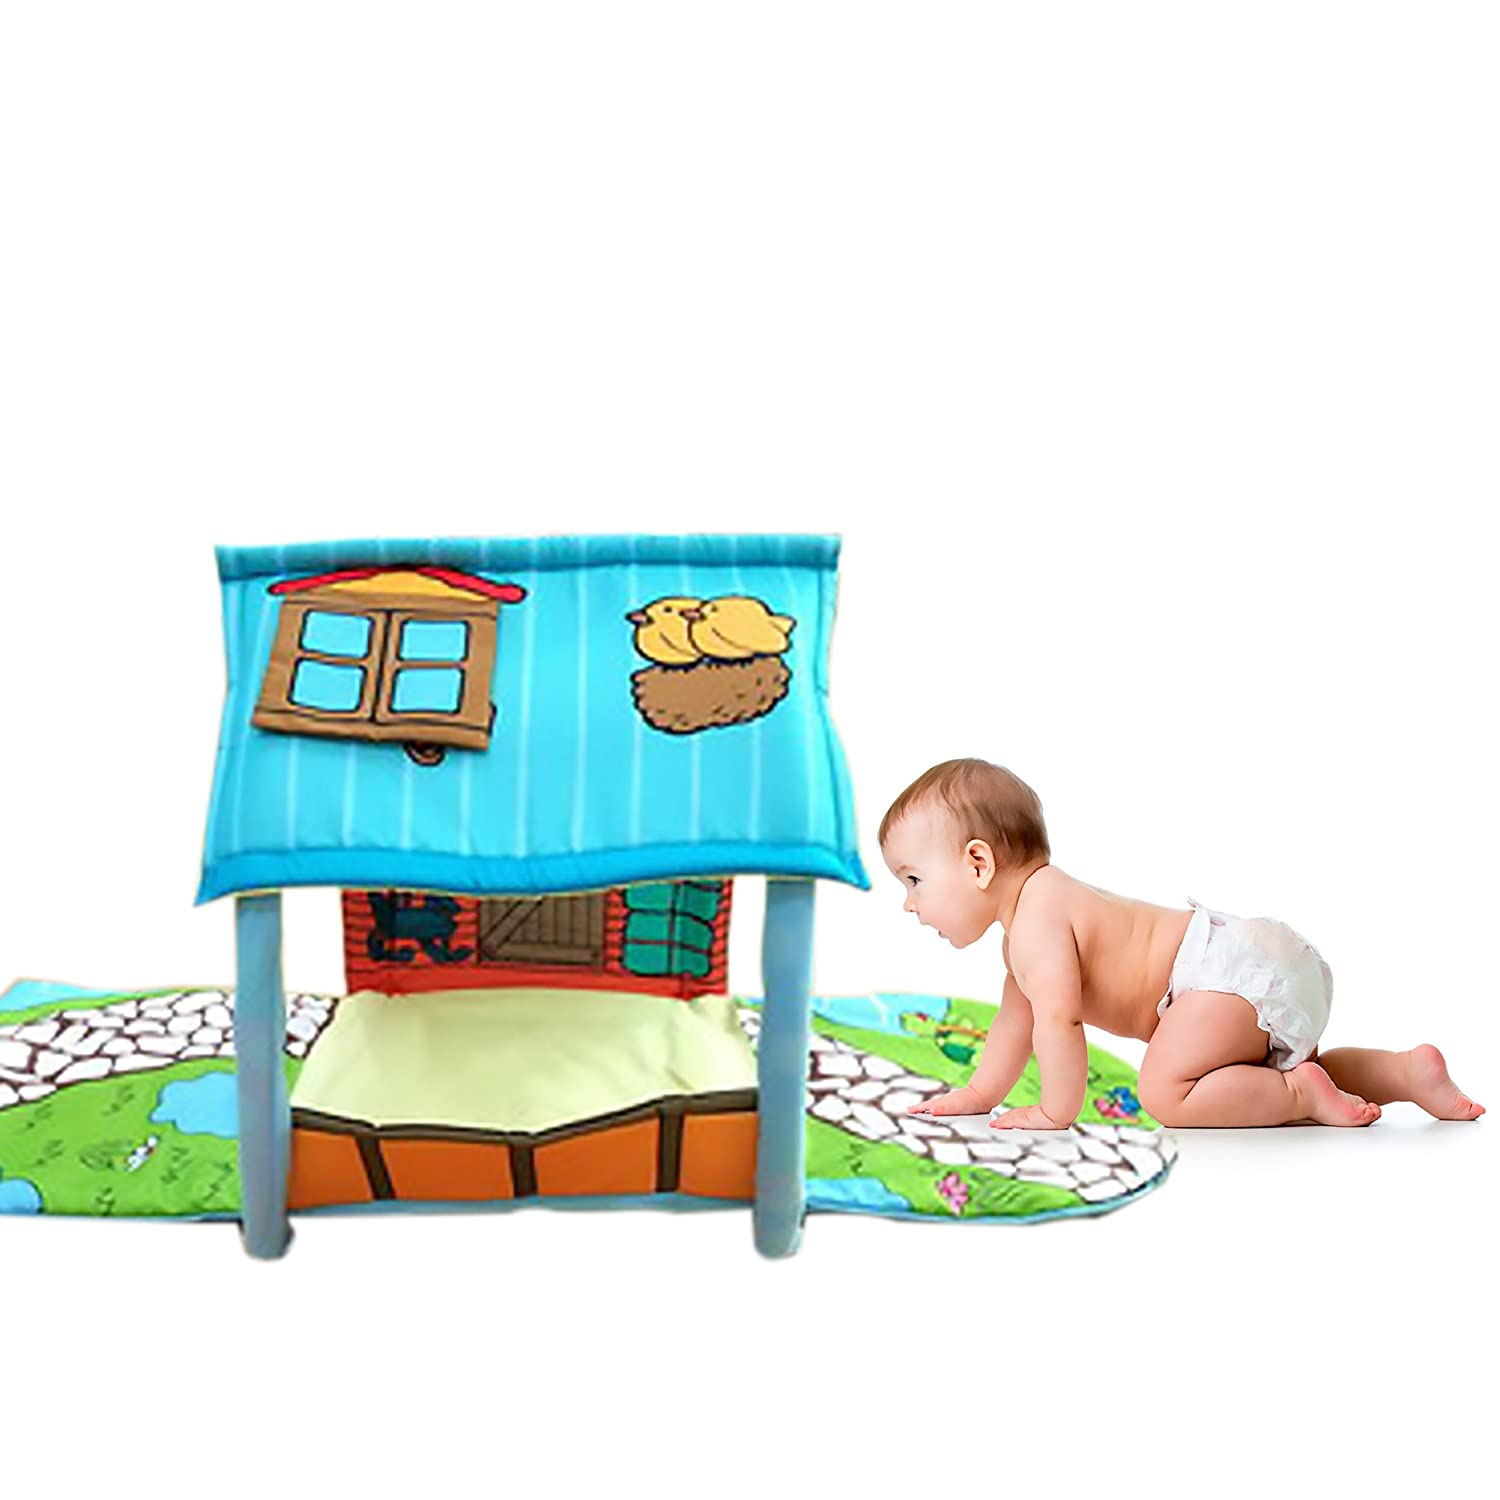 Amazon.com: JamBea Multi Functional Padded Baby playmat ...